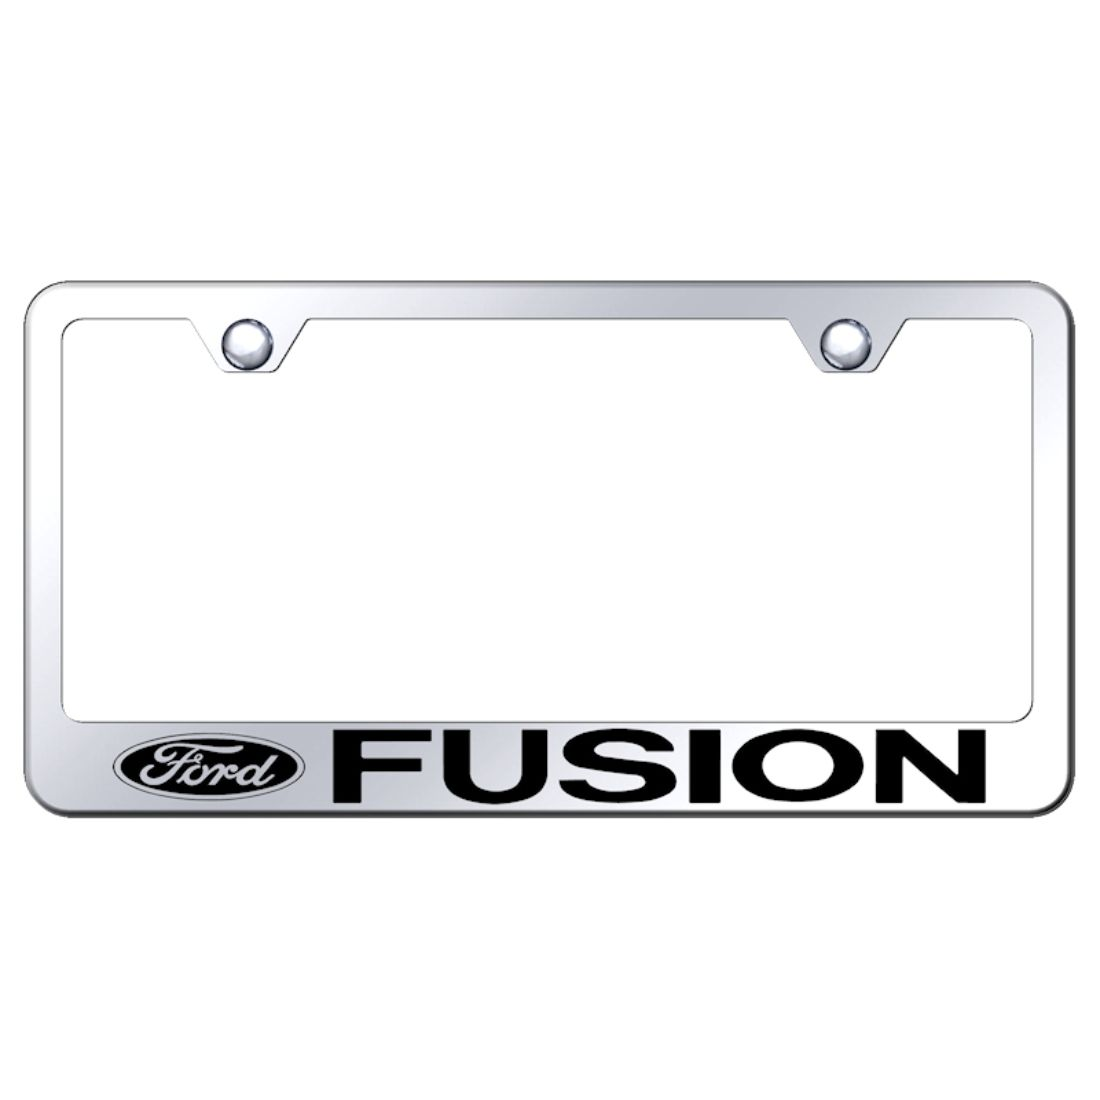 Ford Mirroed Chrome Stainless Steel License Plate Frame